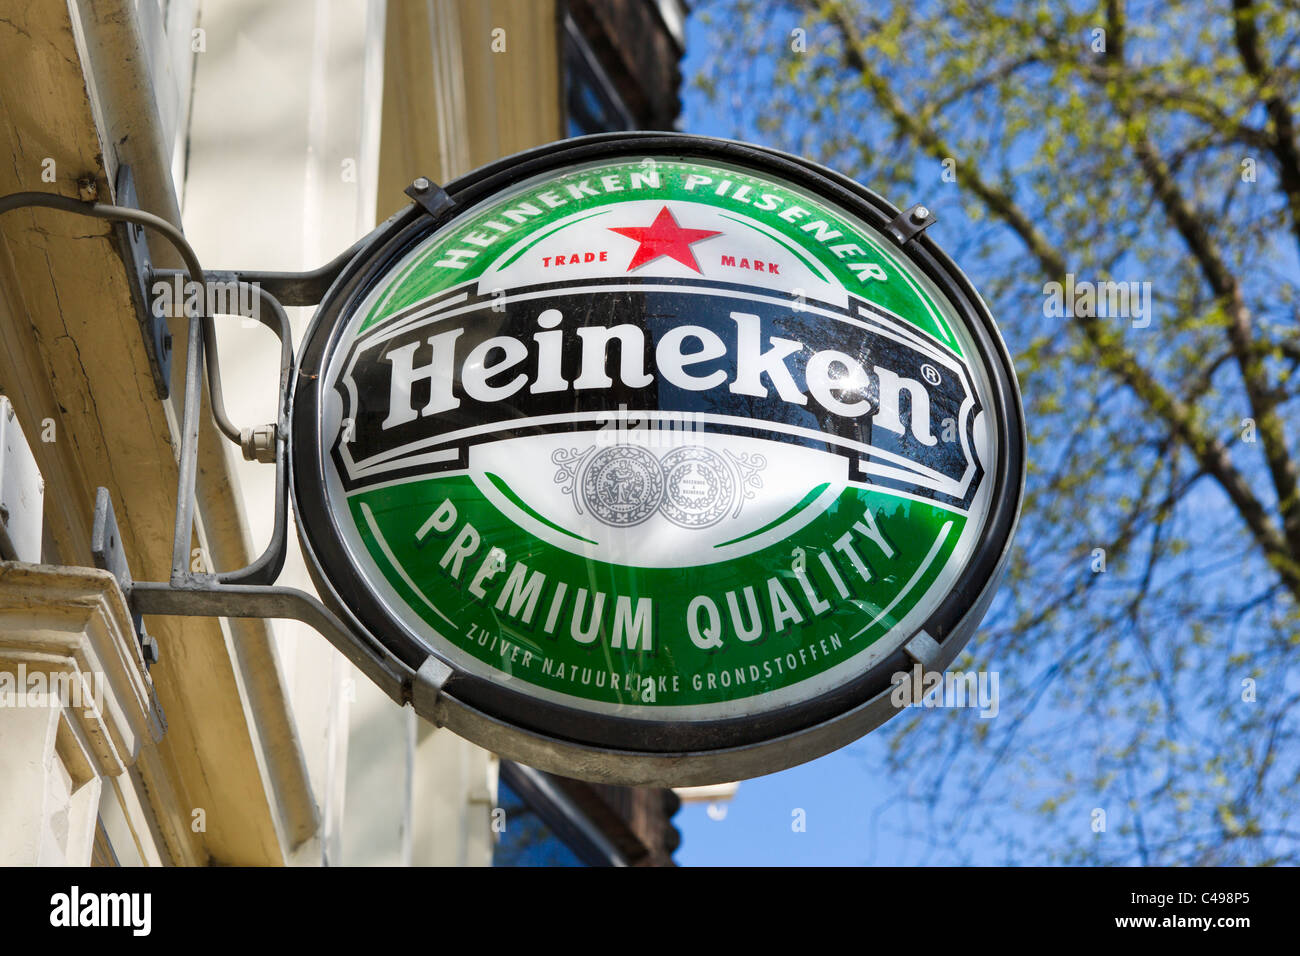 Sign for Heineken beer outside a bar in Amsterdam, Netherlands - Stock Image